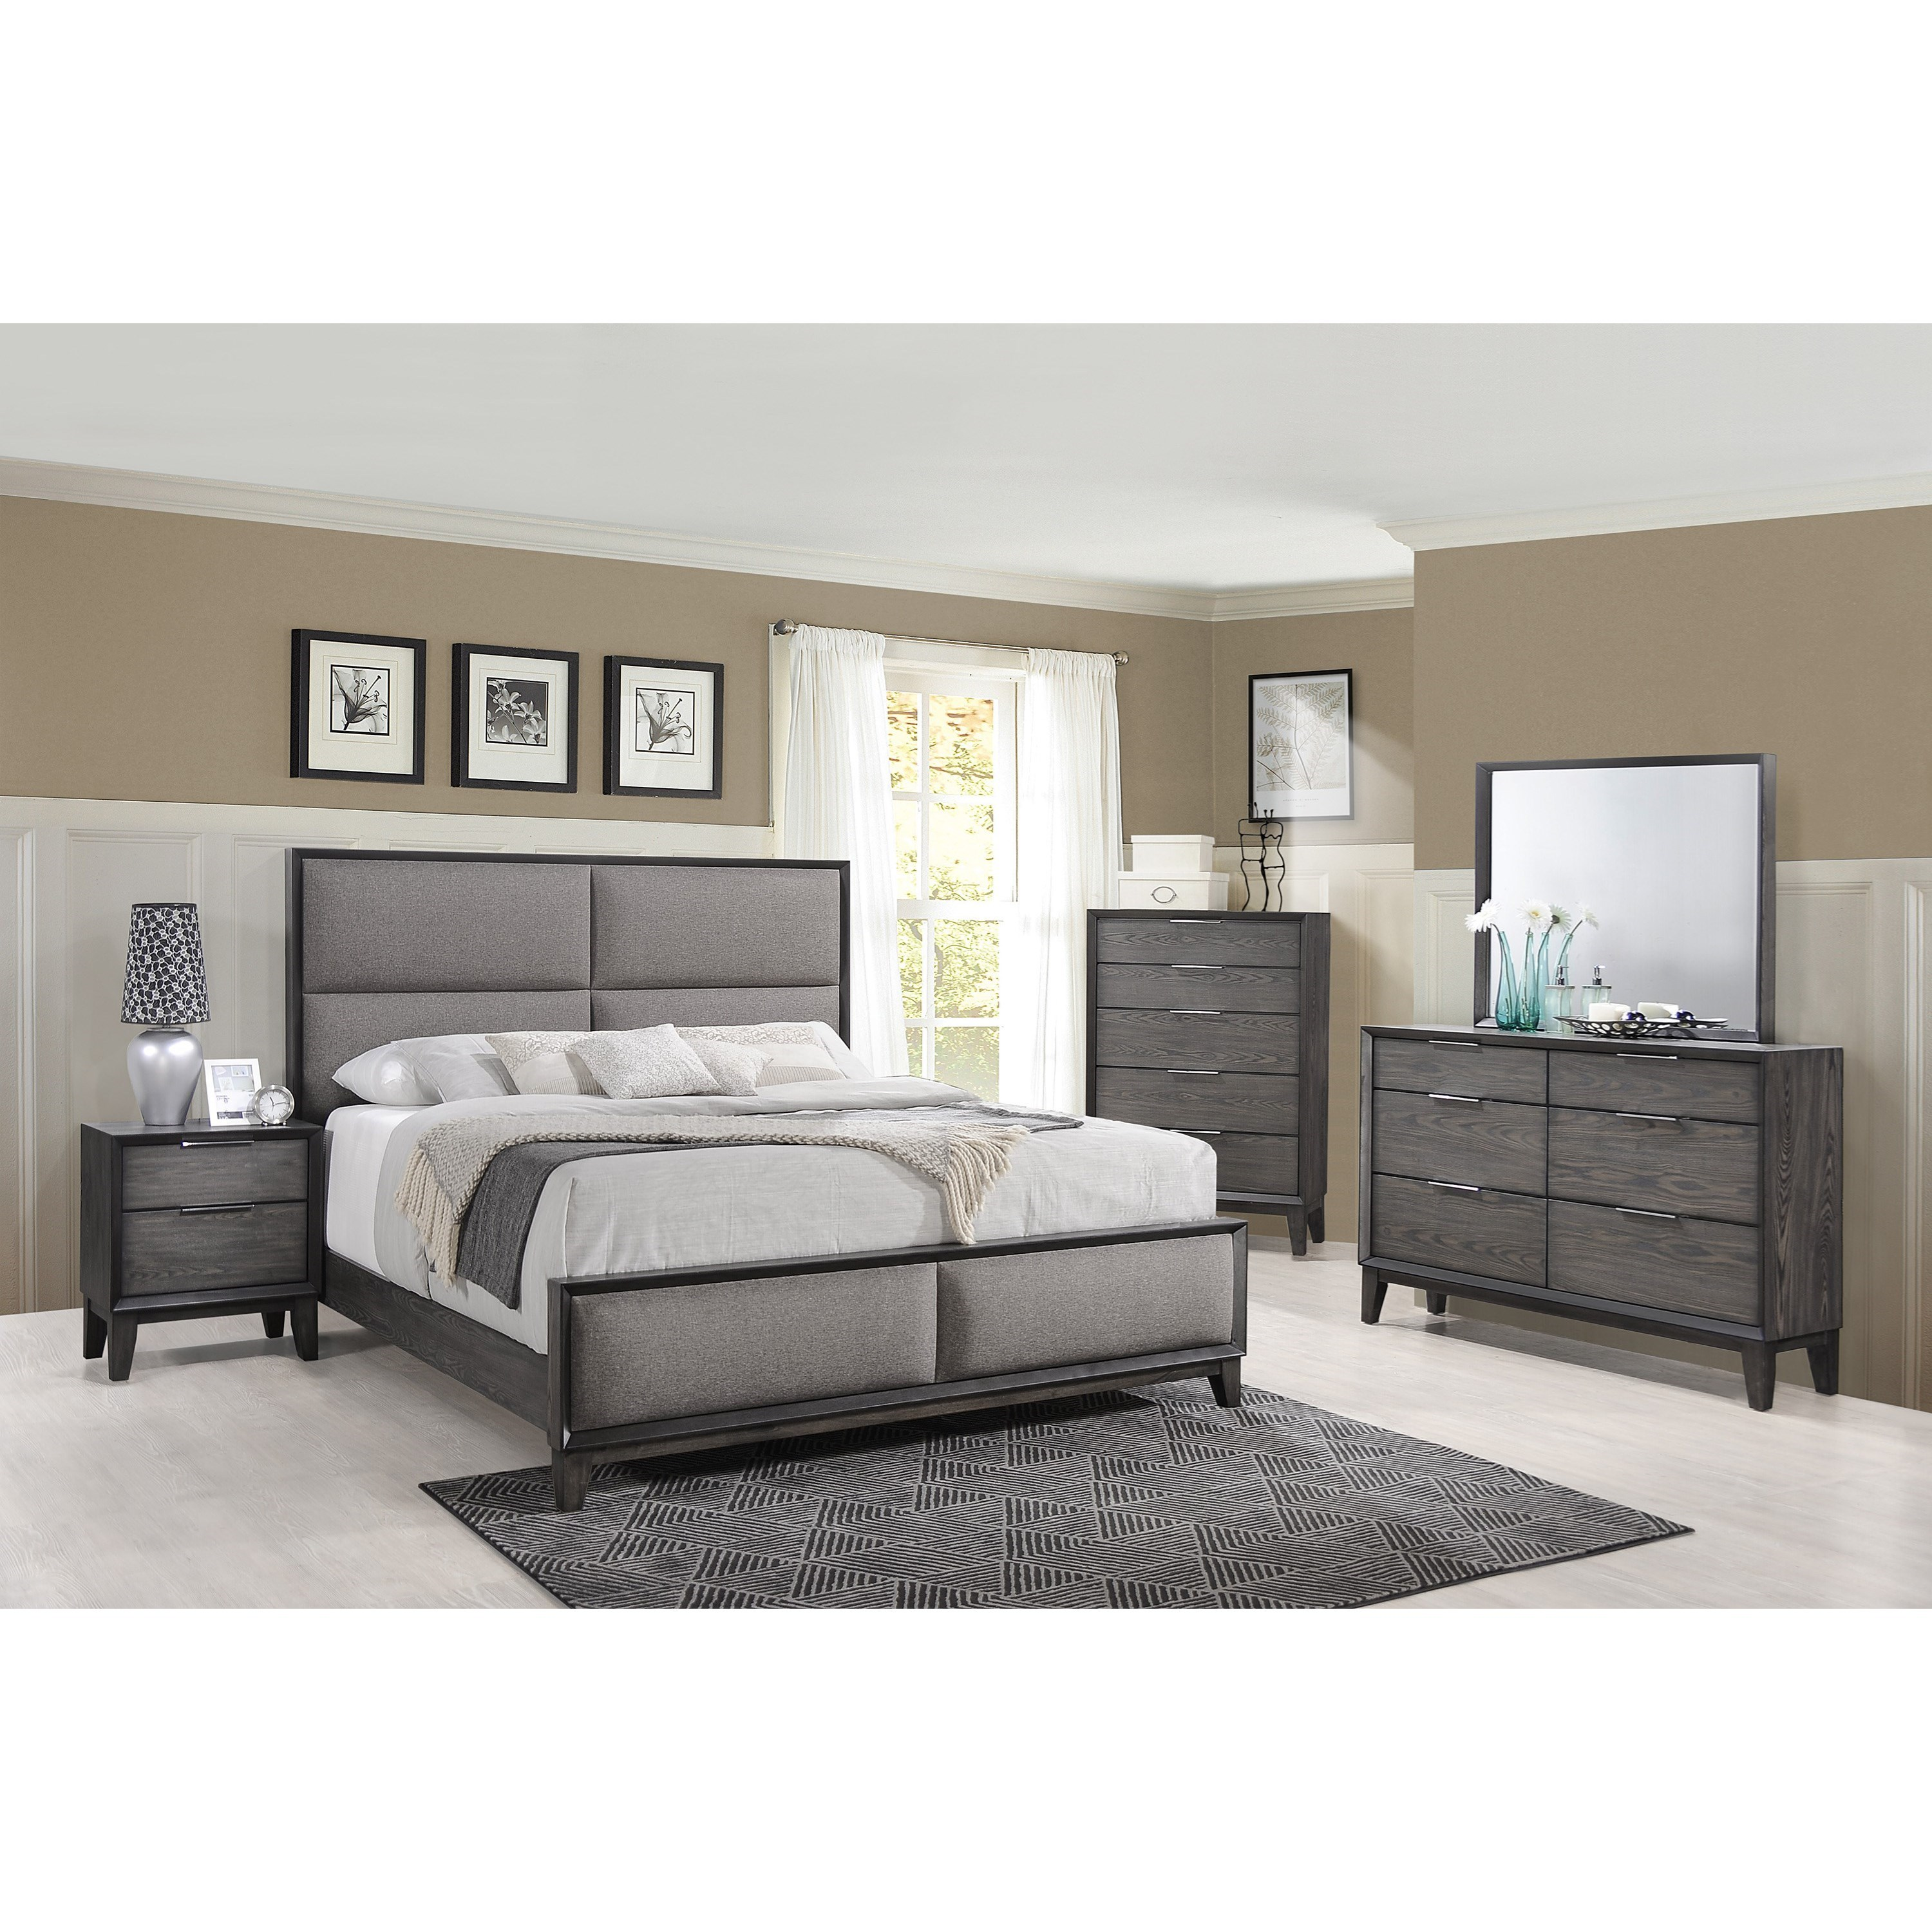 Florian King Bedroom Group by Crown Mark at Northeast Factory Direct